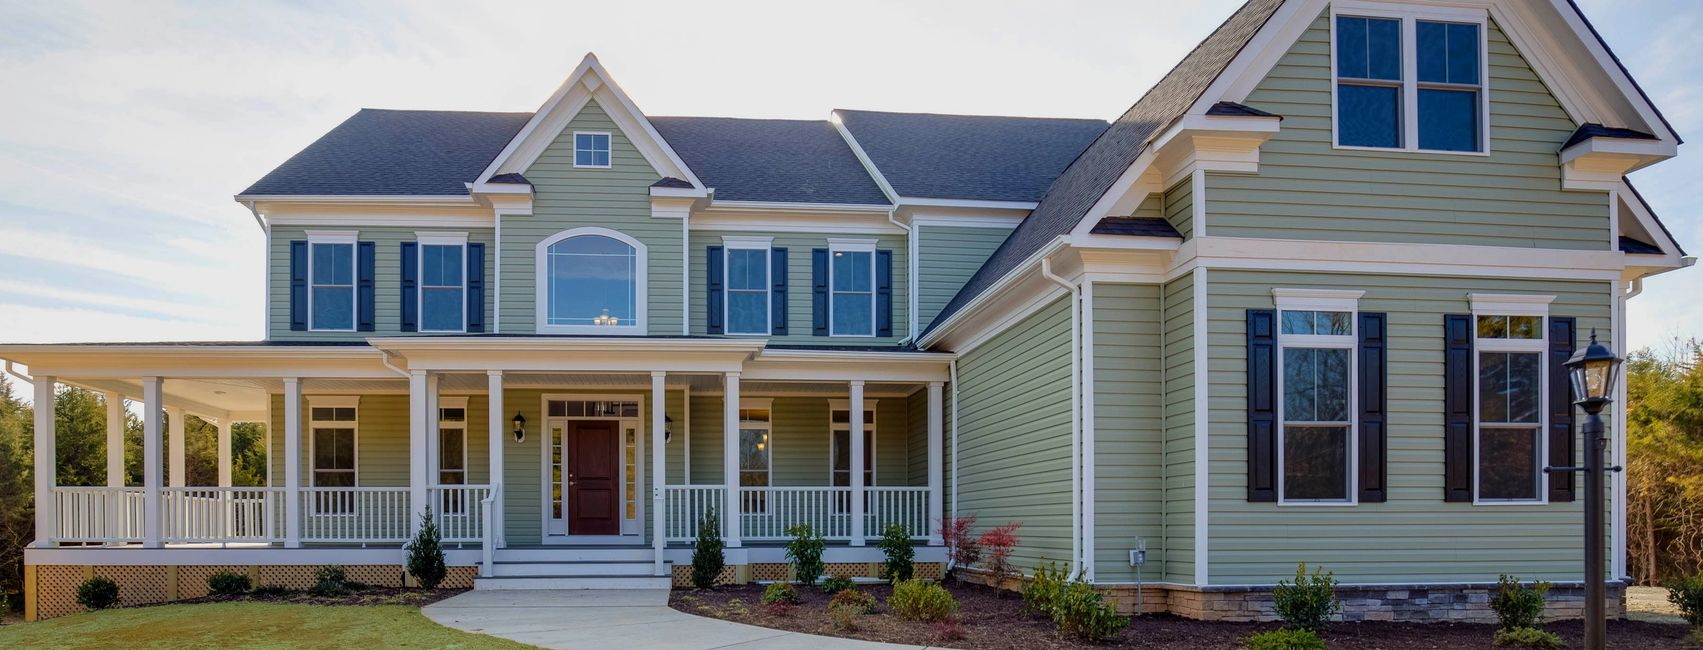 custom homes, home builder, new construction homes, woodlawn farms